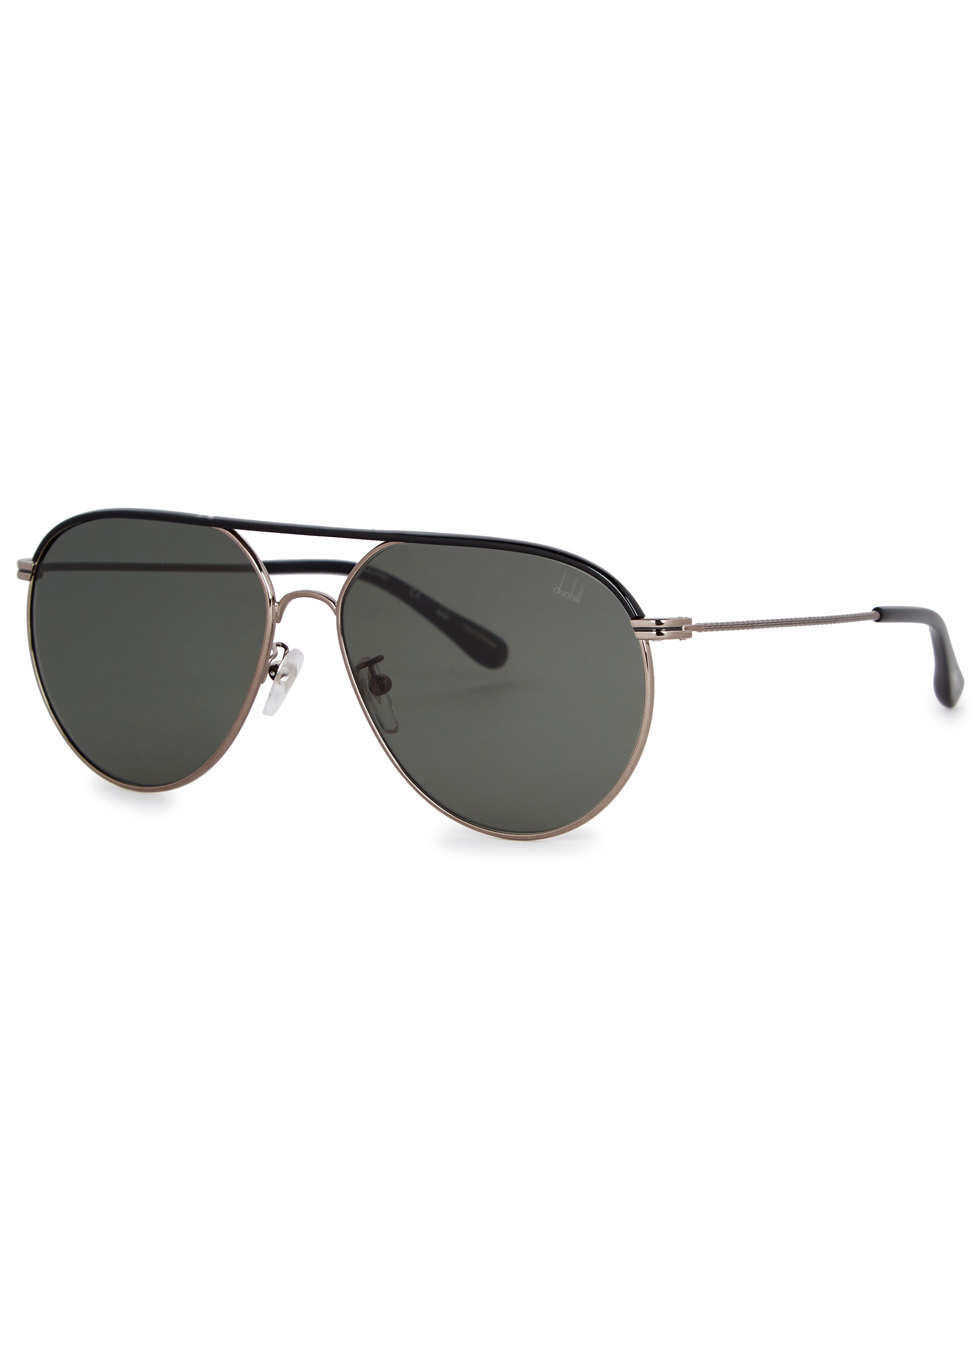 DUNHILL LONDON Dark Green Aviator-Style Sunglasses in Grey